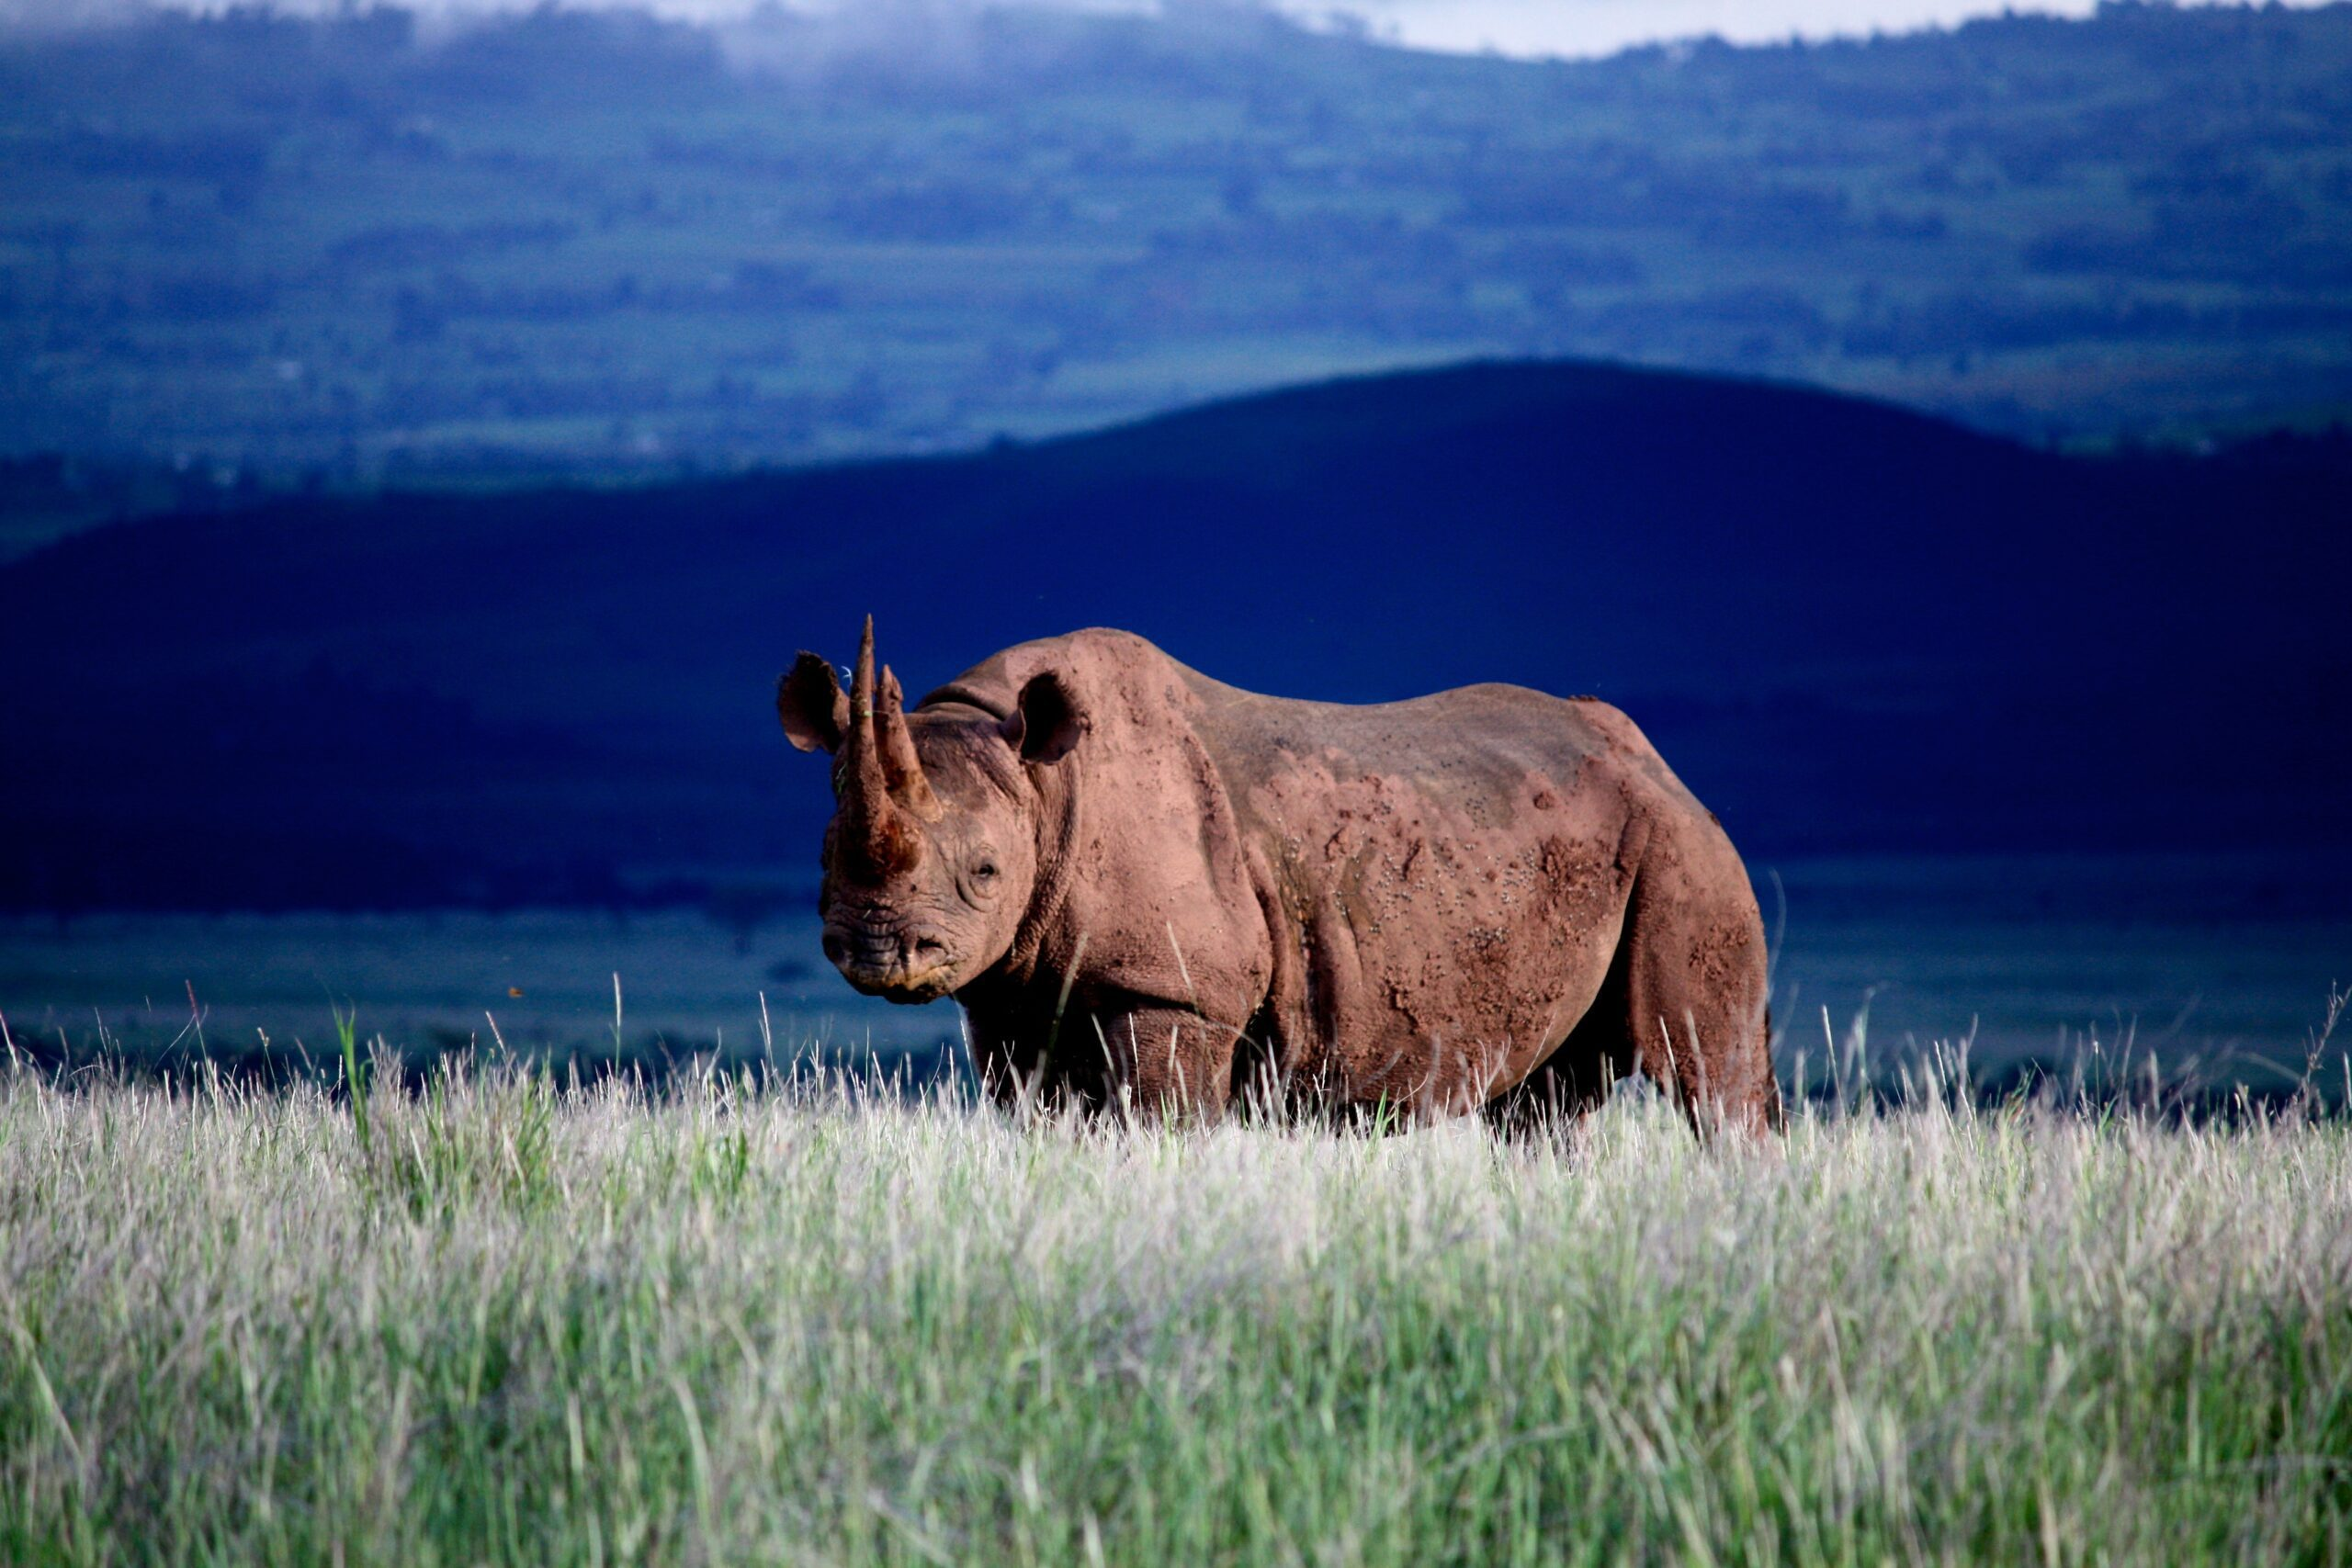 lone rhino in a field with blueish hills in the background